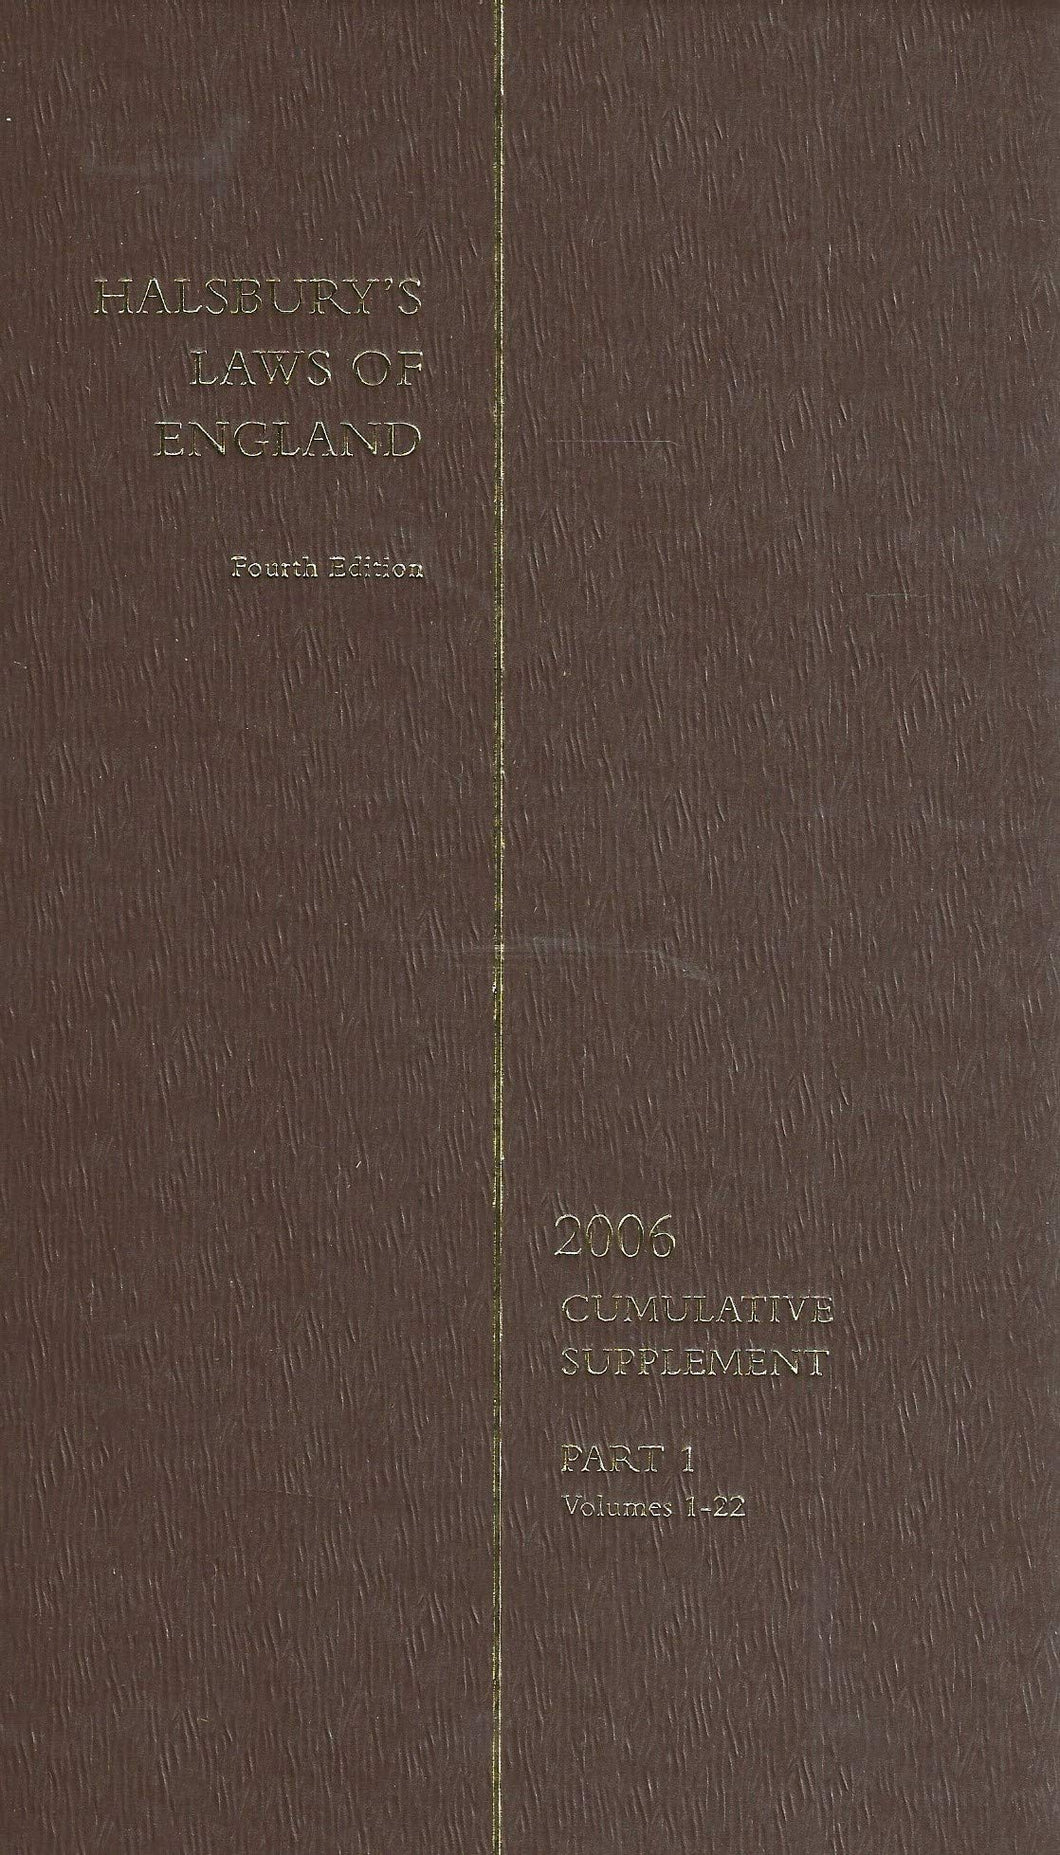 Halsbury's Laws of England - Fourth Edition, 2006 Cumulative Supplement - Part 1, Volumes 1-22